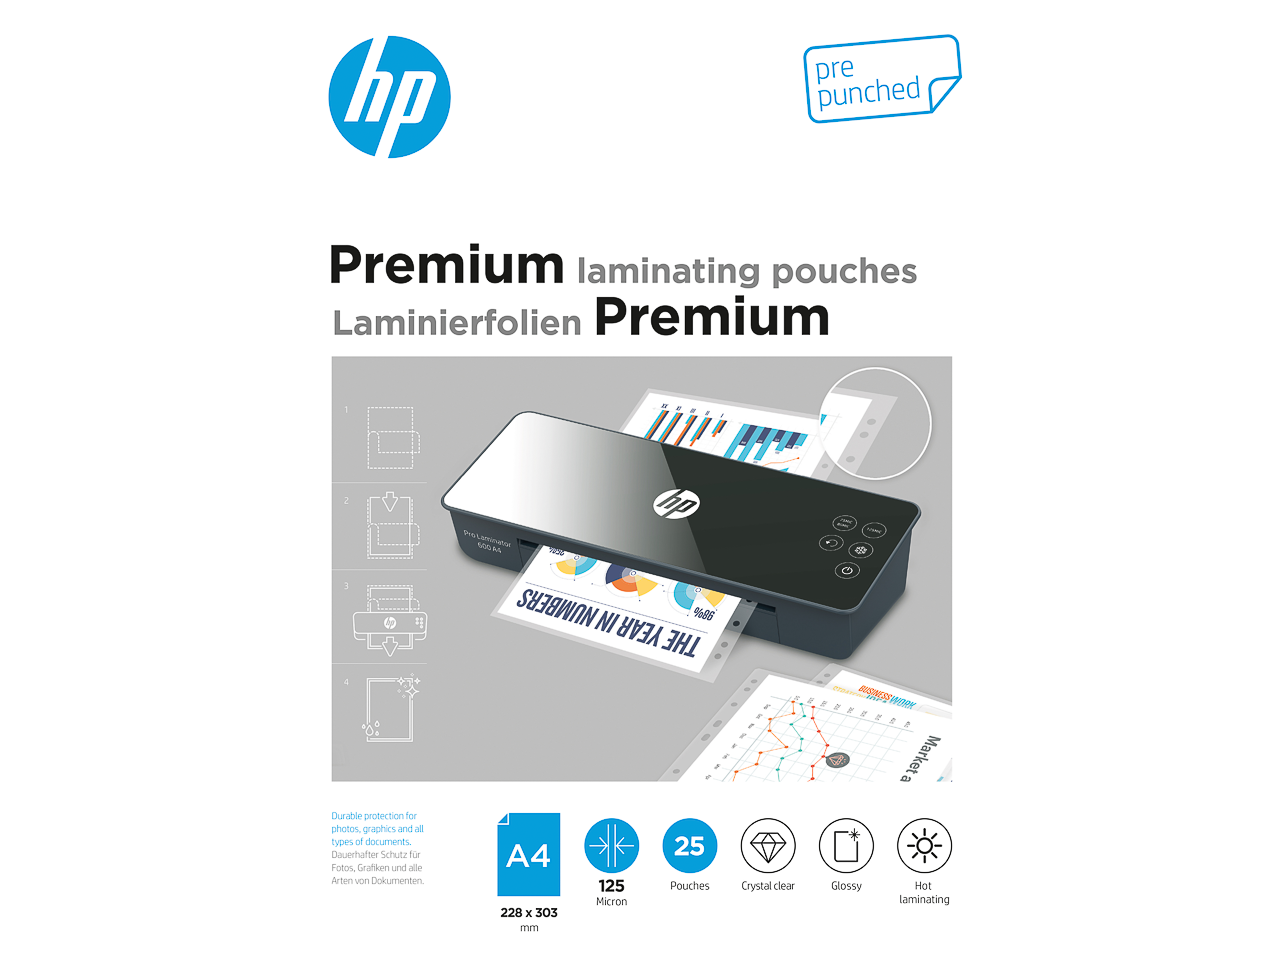 HP PREMIUM LAMINATING POUCHES A4 9122 25sheets 125mic with punching 1